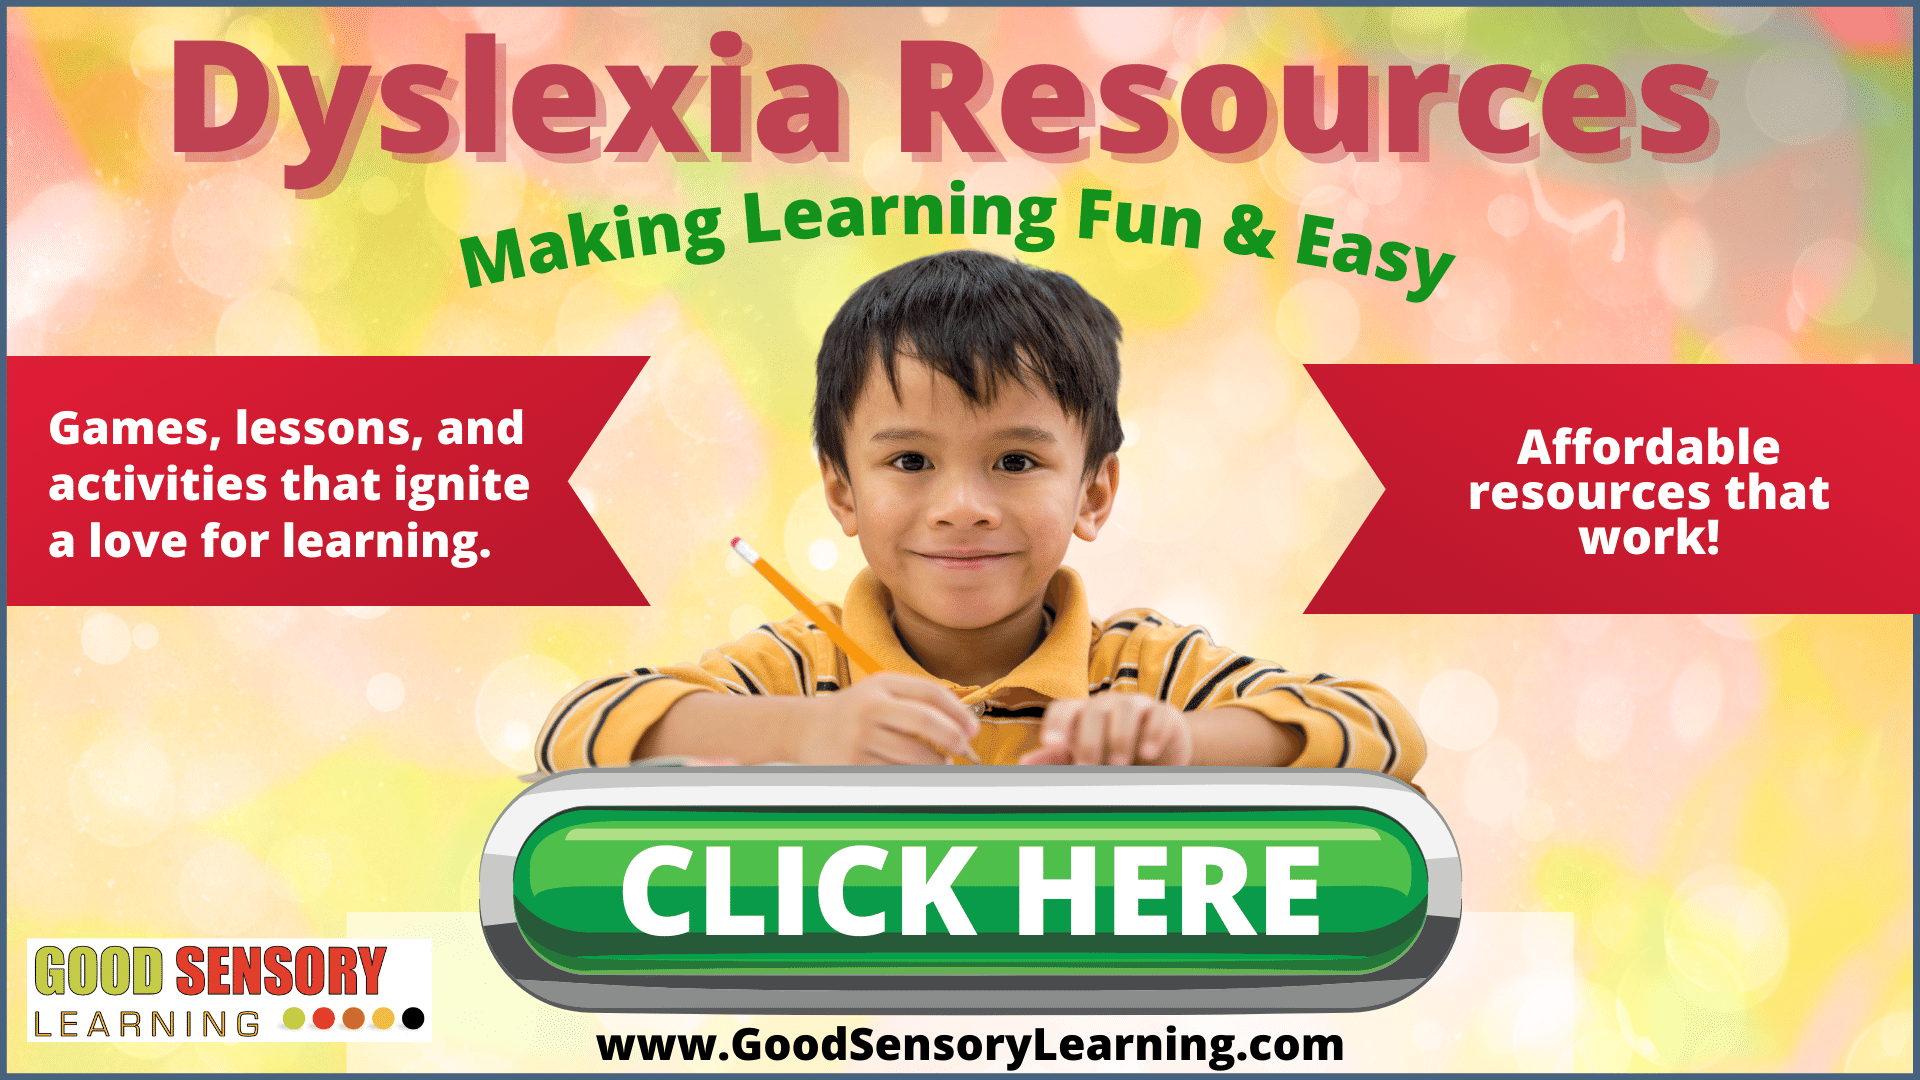 dyslexia resources and materials